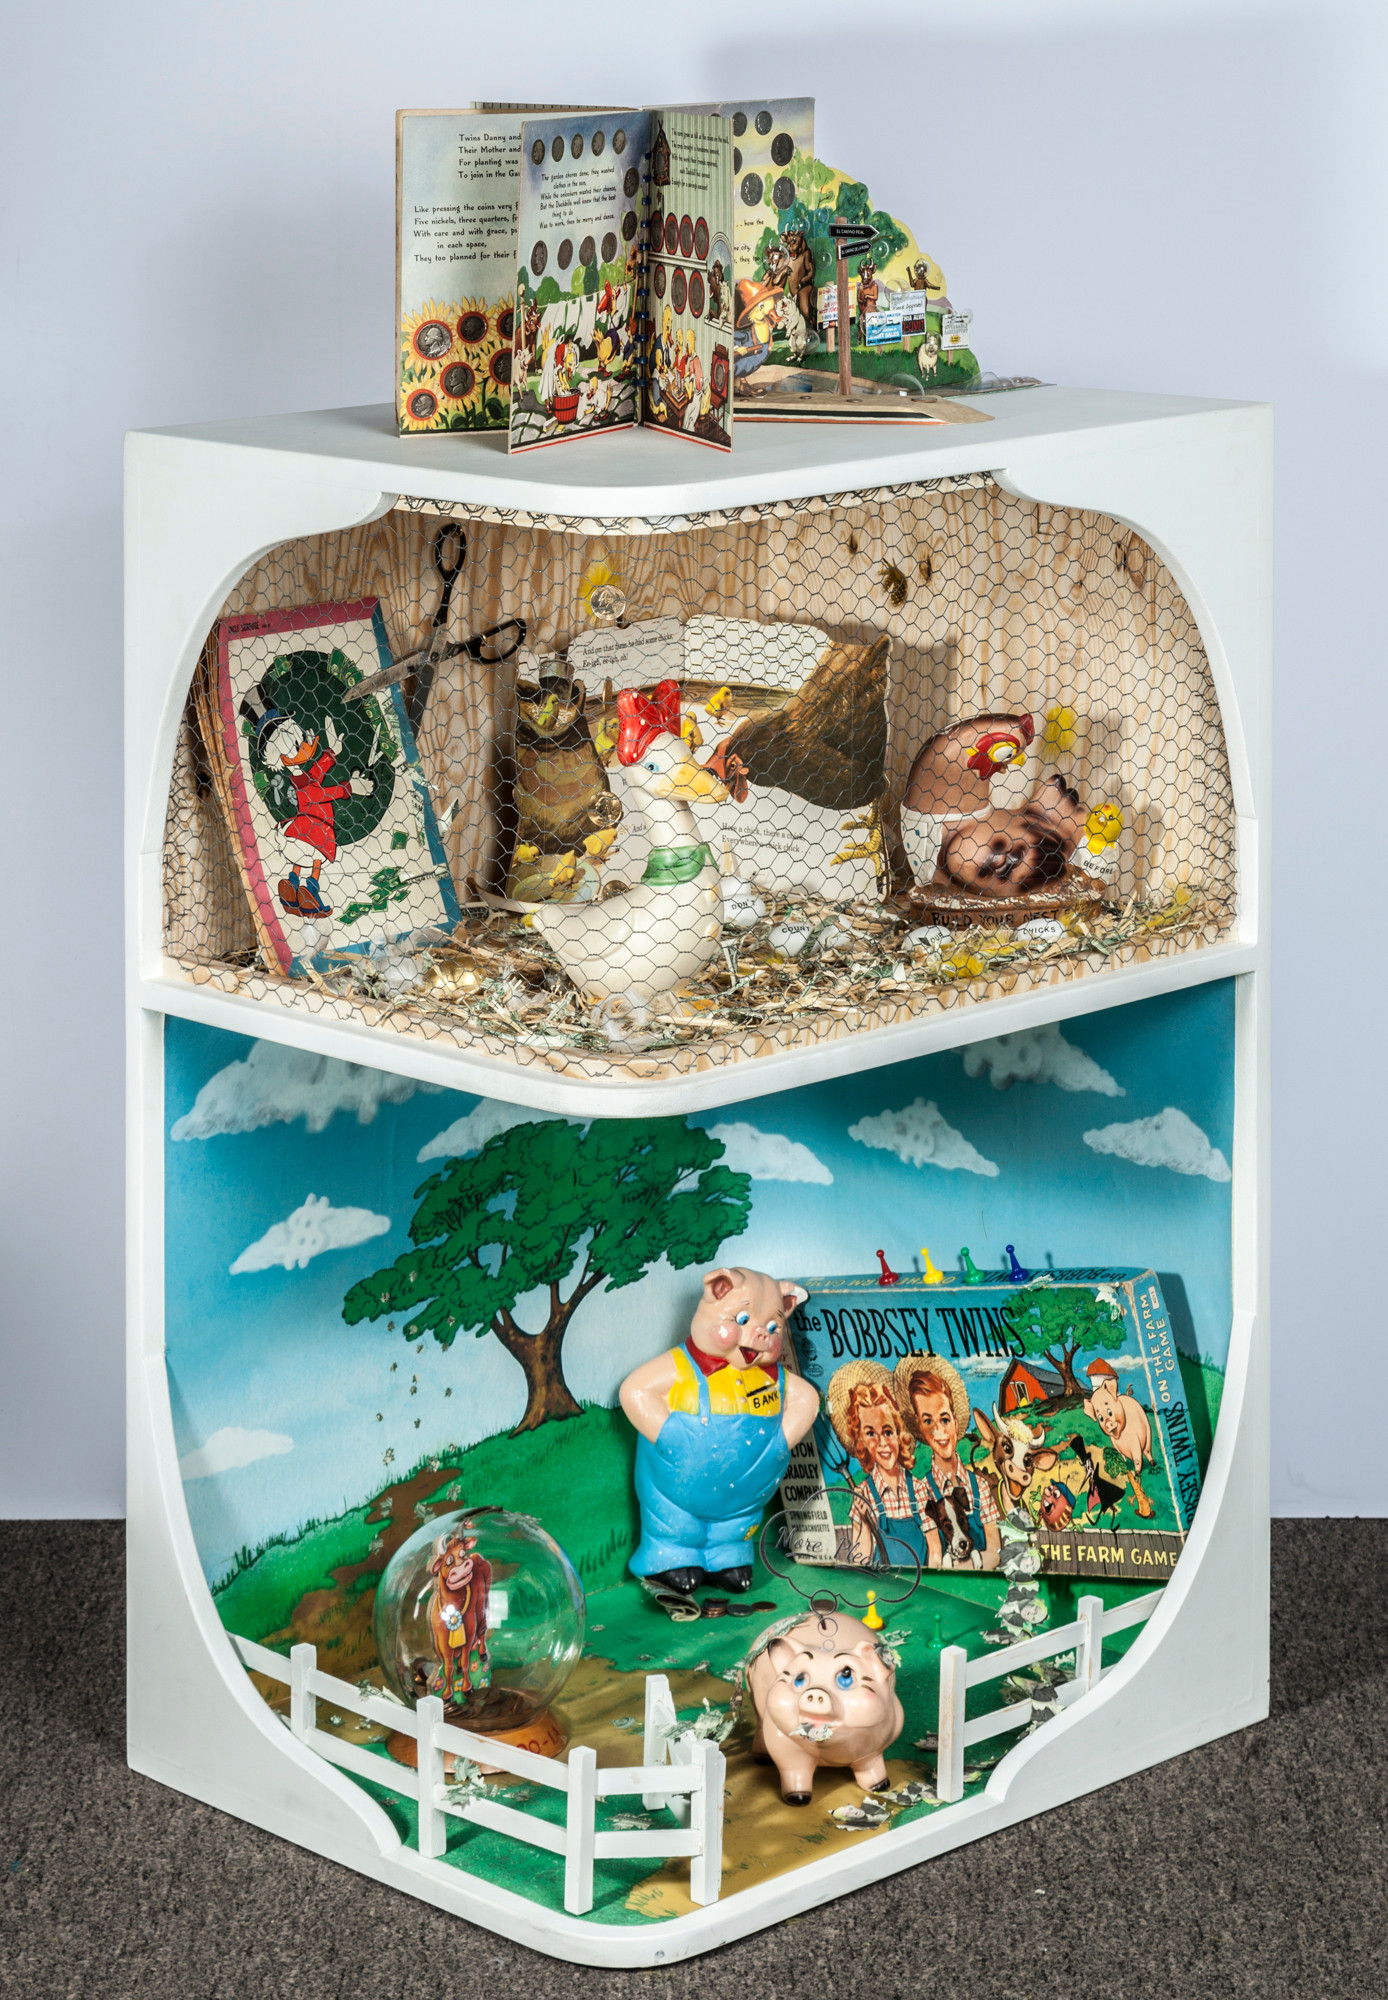 This piece consists of a three part cabinet with the altered book, Save With the Duckbill Family, displayed at the top. The dual theme of farming and money is continued on the two shelves below in vignettes composed of vintage three dimensional vintage objects from the 1950s.